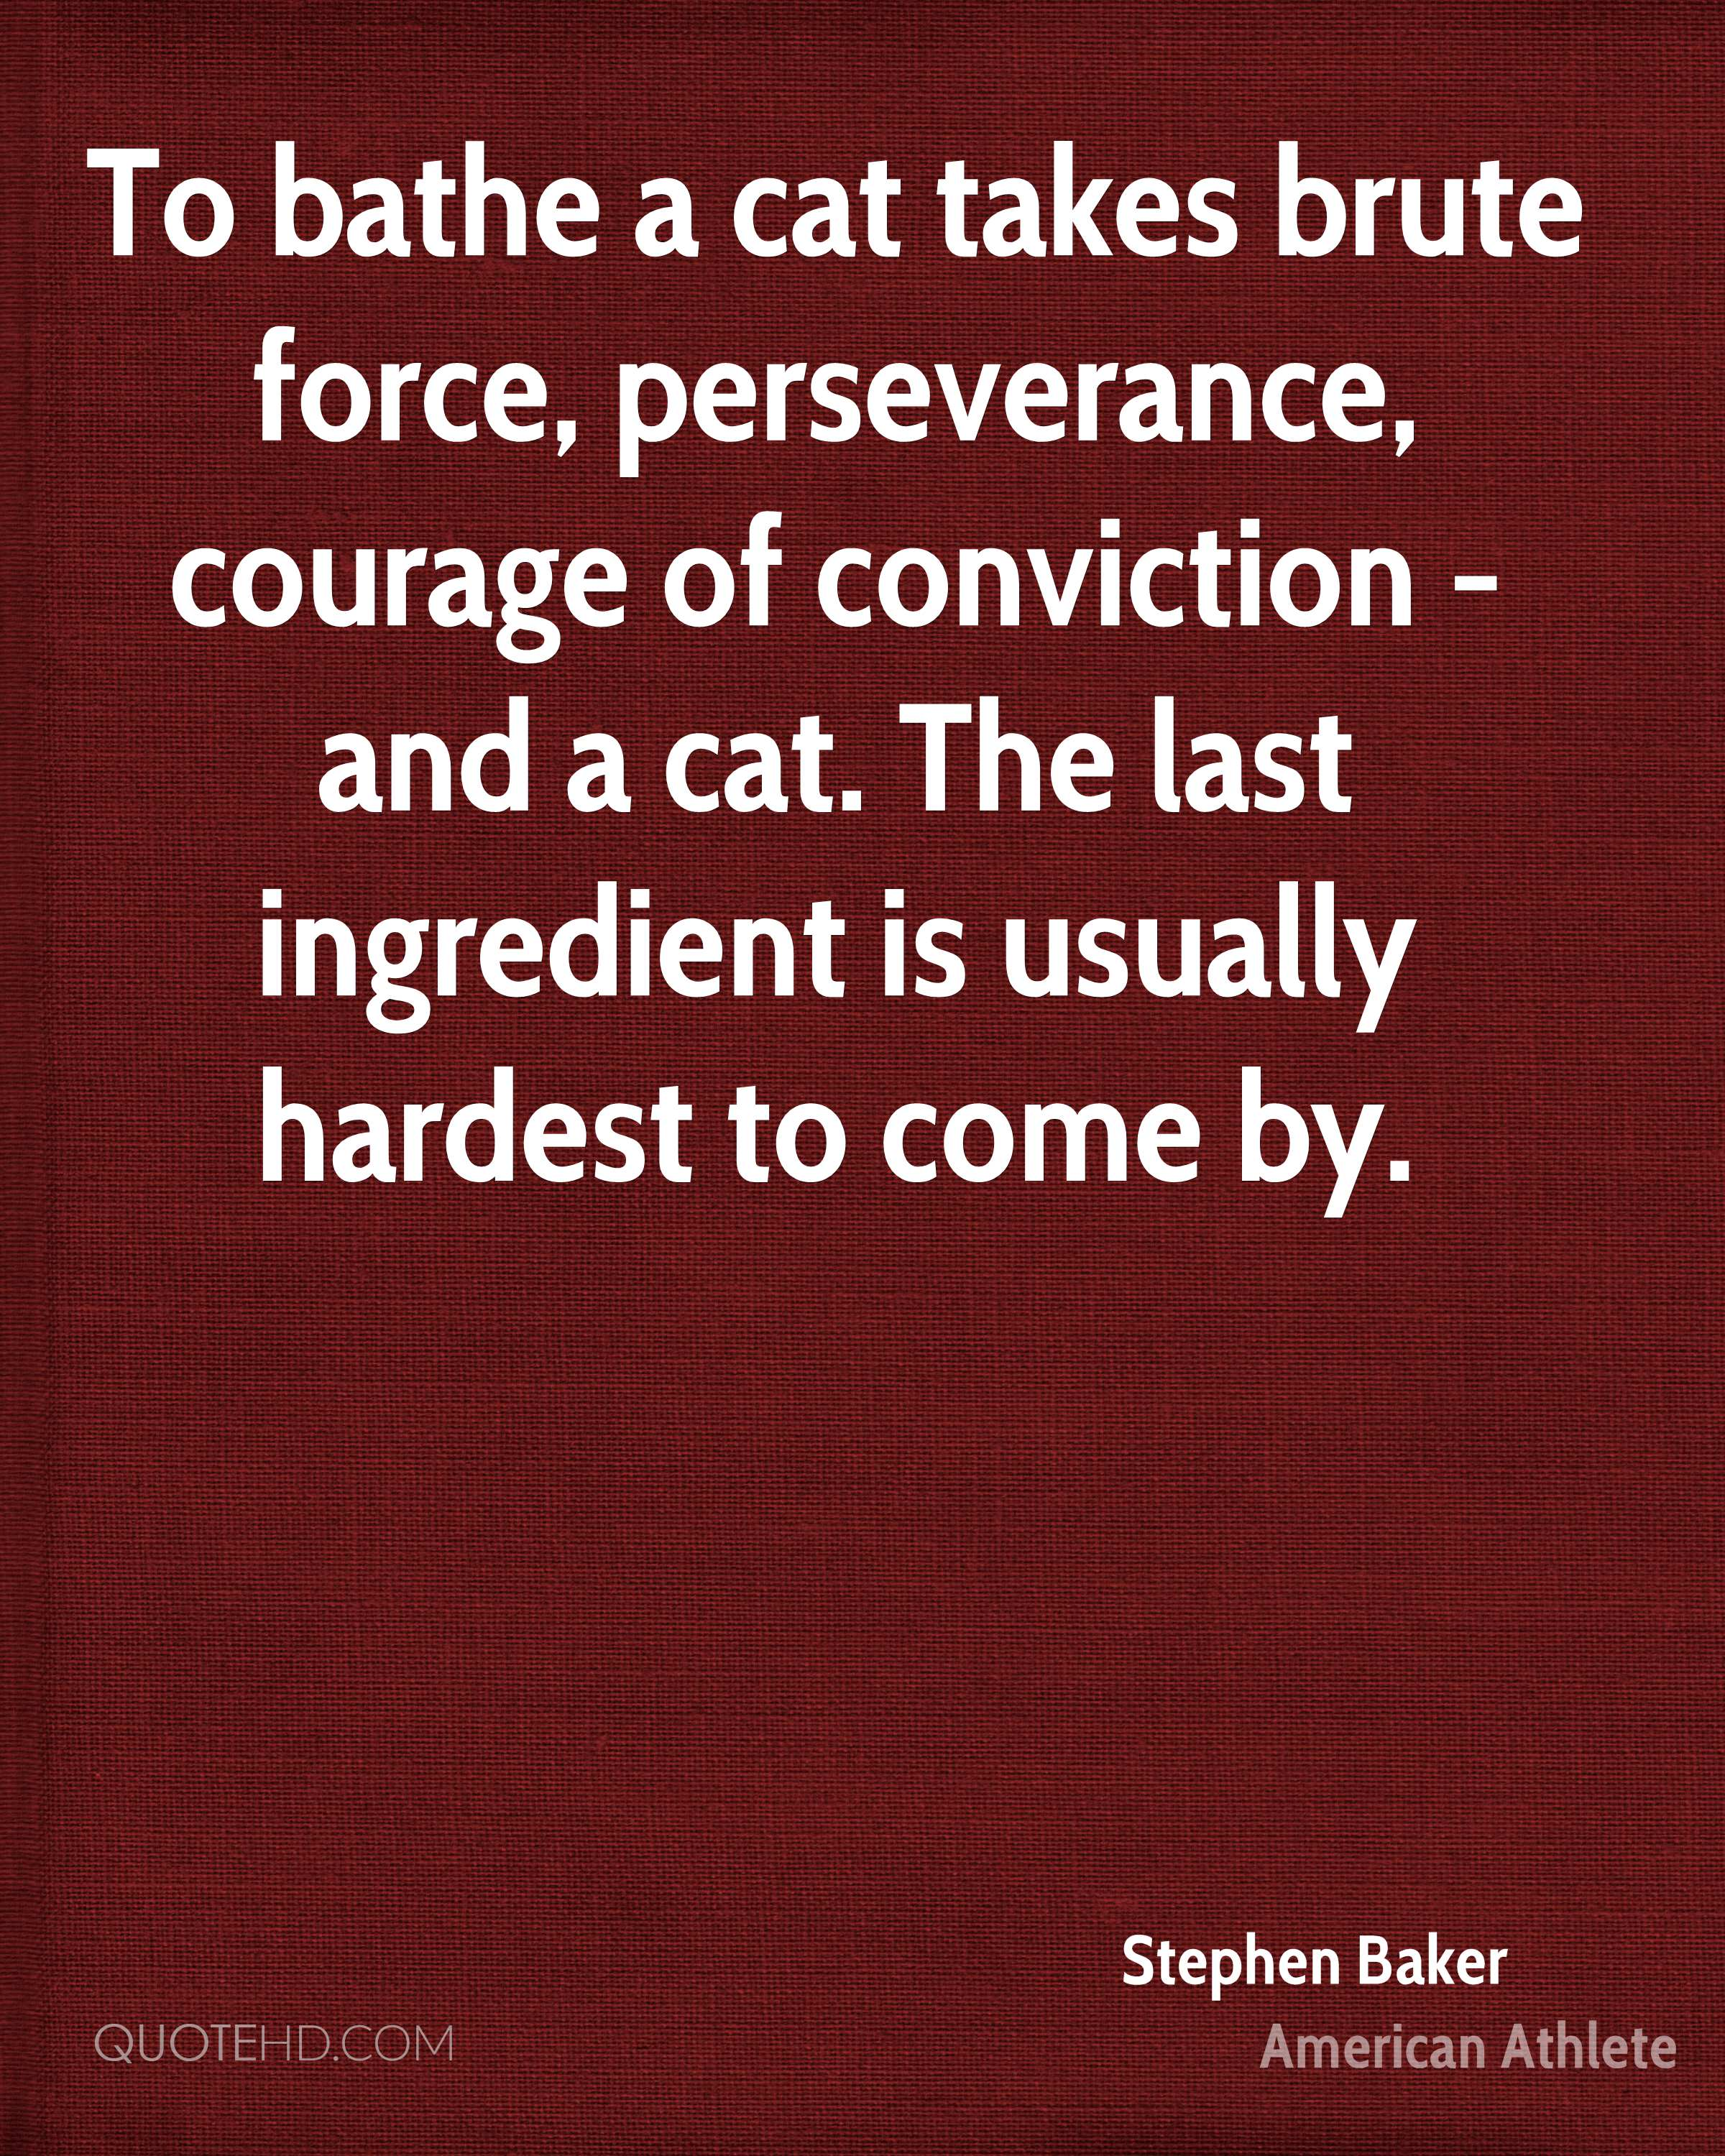 To bathe a cat takes brute force, perseverance, courage of conviction - and a cat. The last ingredient is usually hardest to come by.